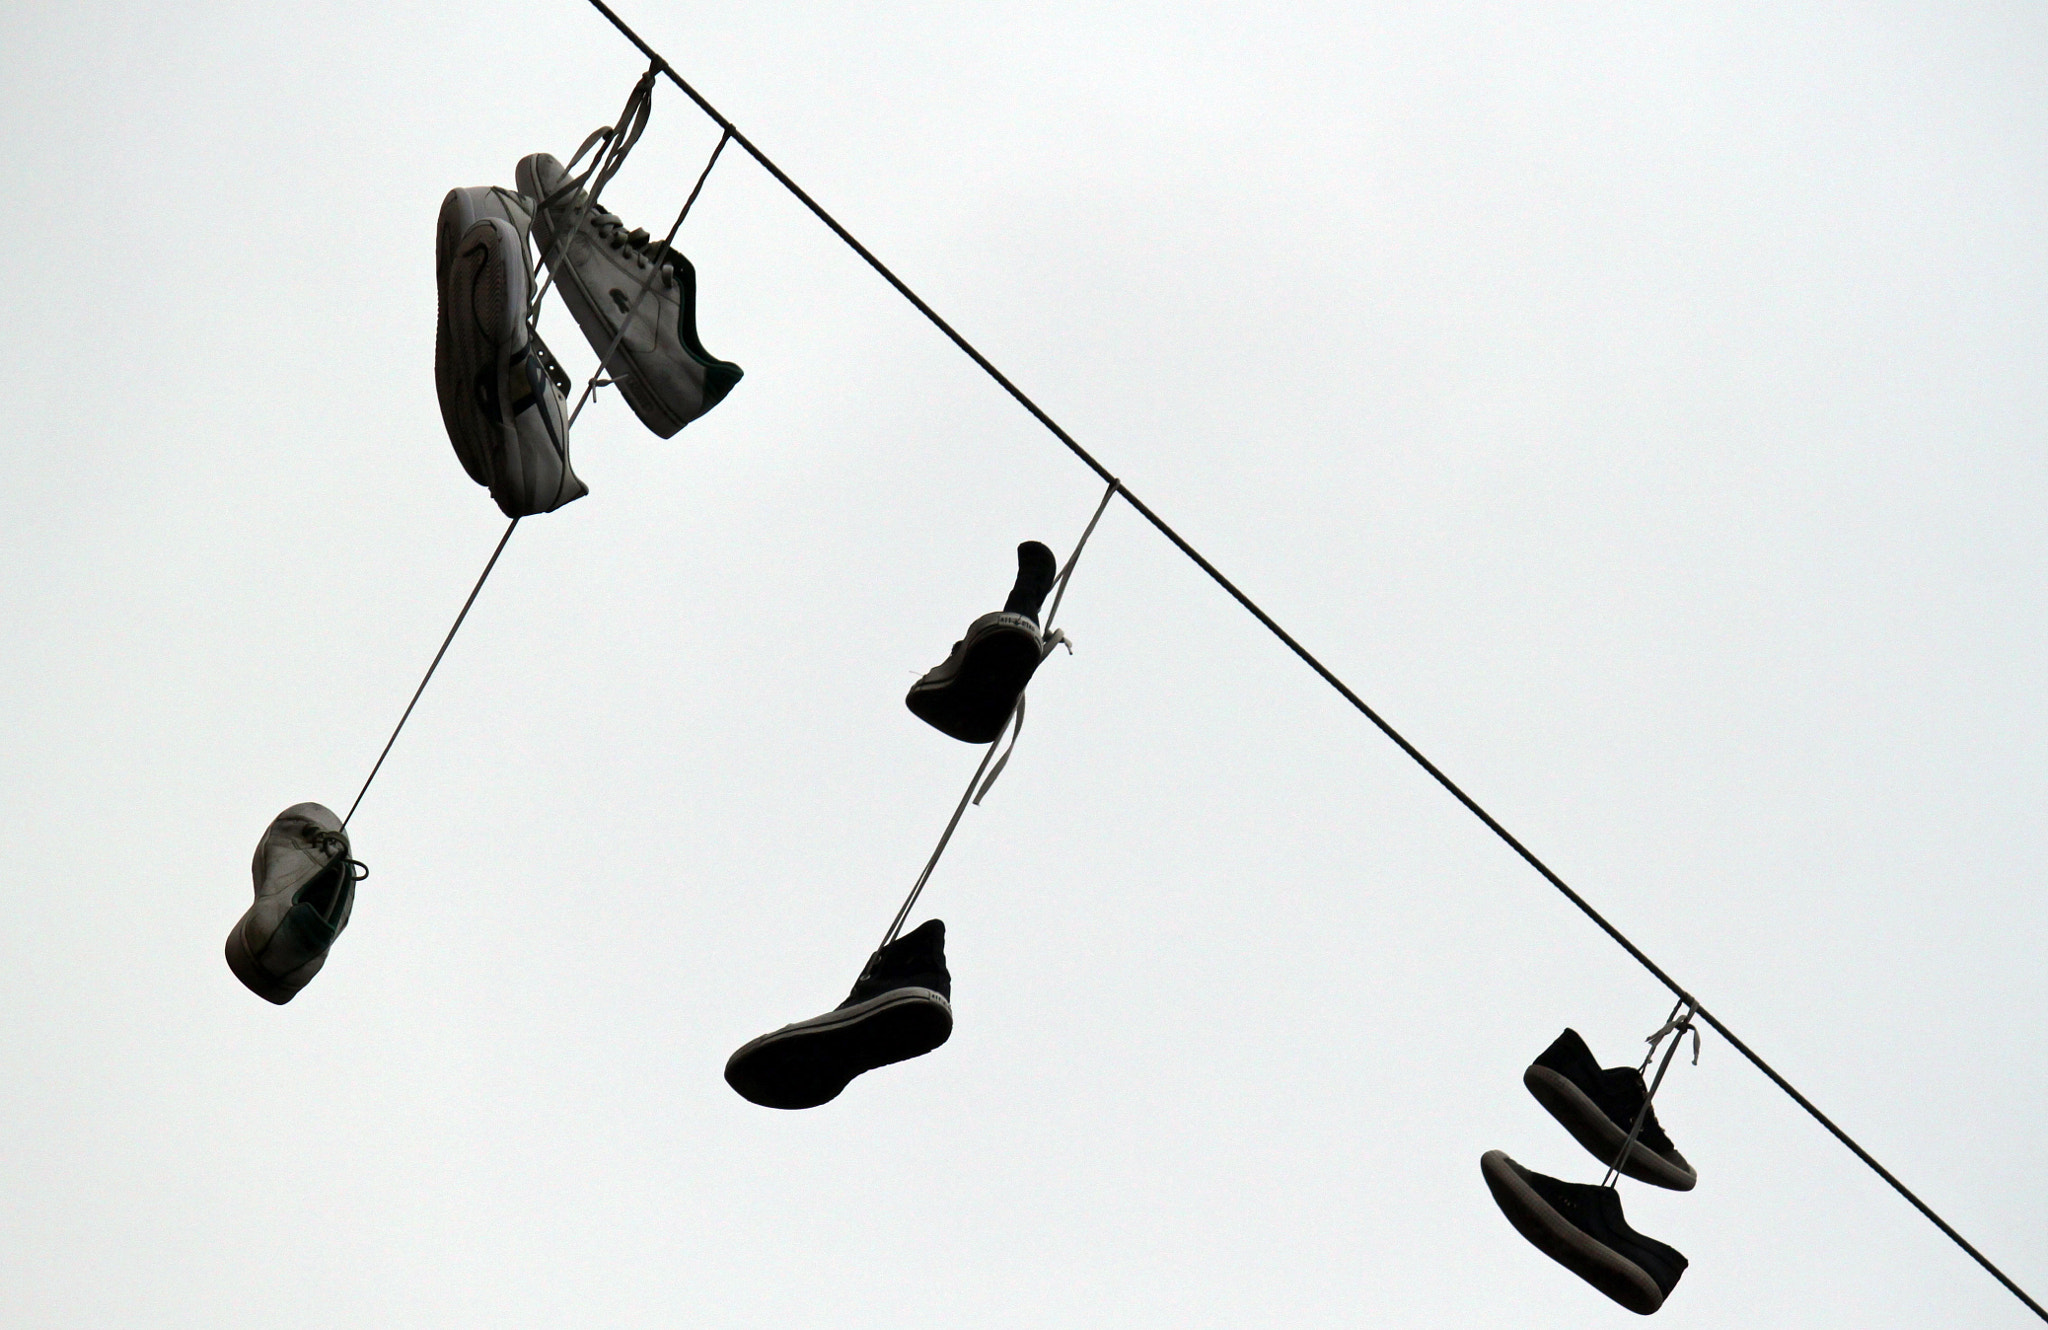 Photograph Hanging shoes by Anne-So Hottiaux on 500px